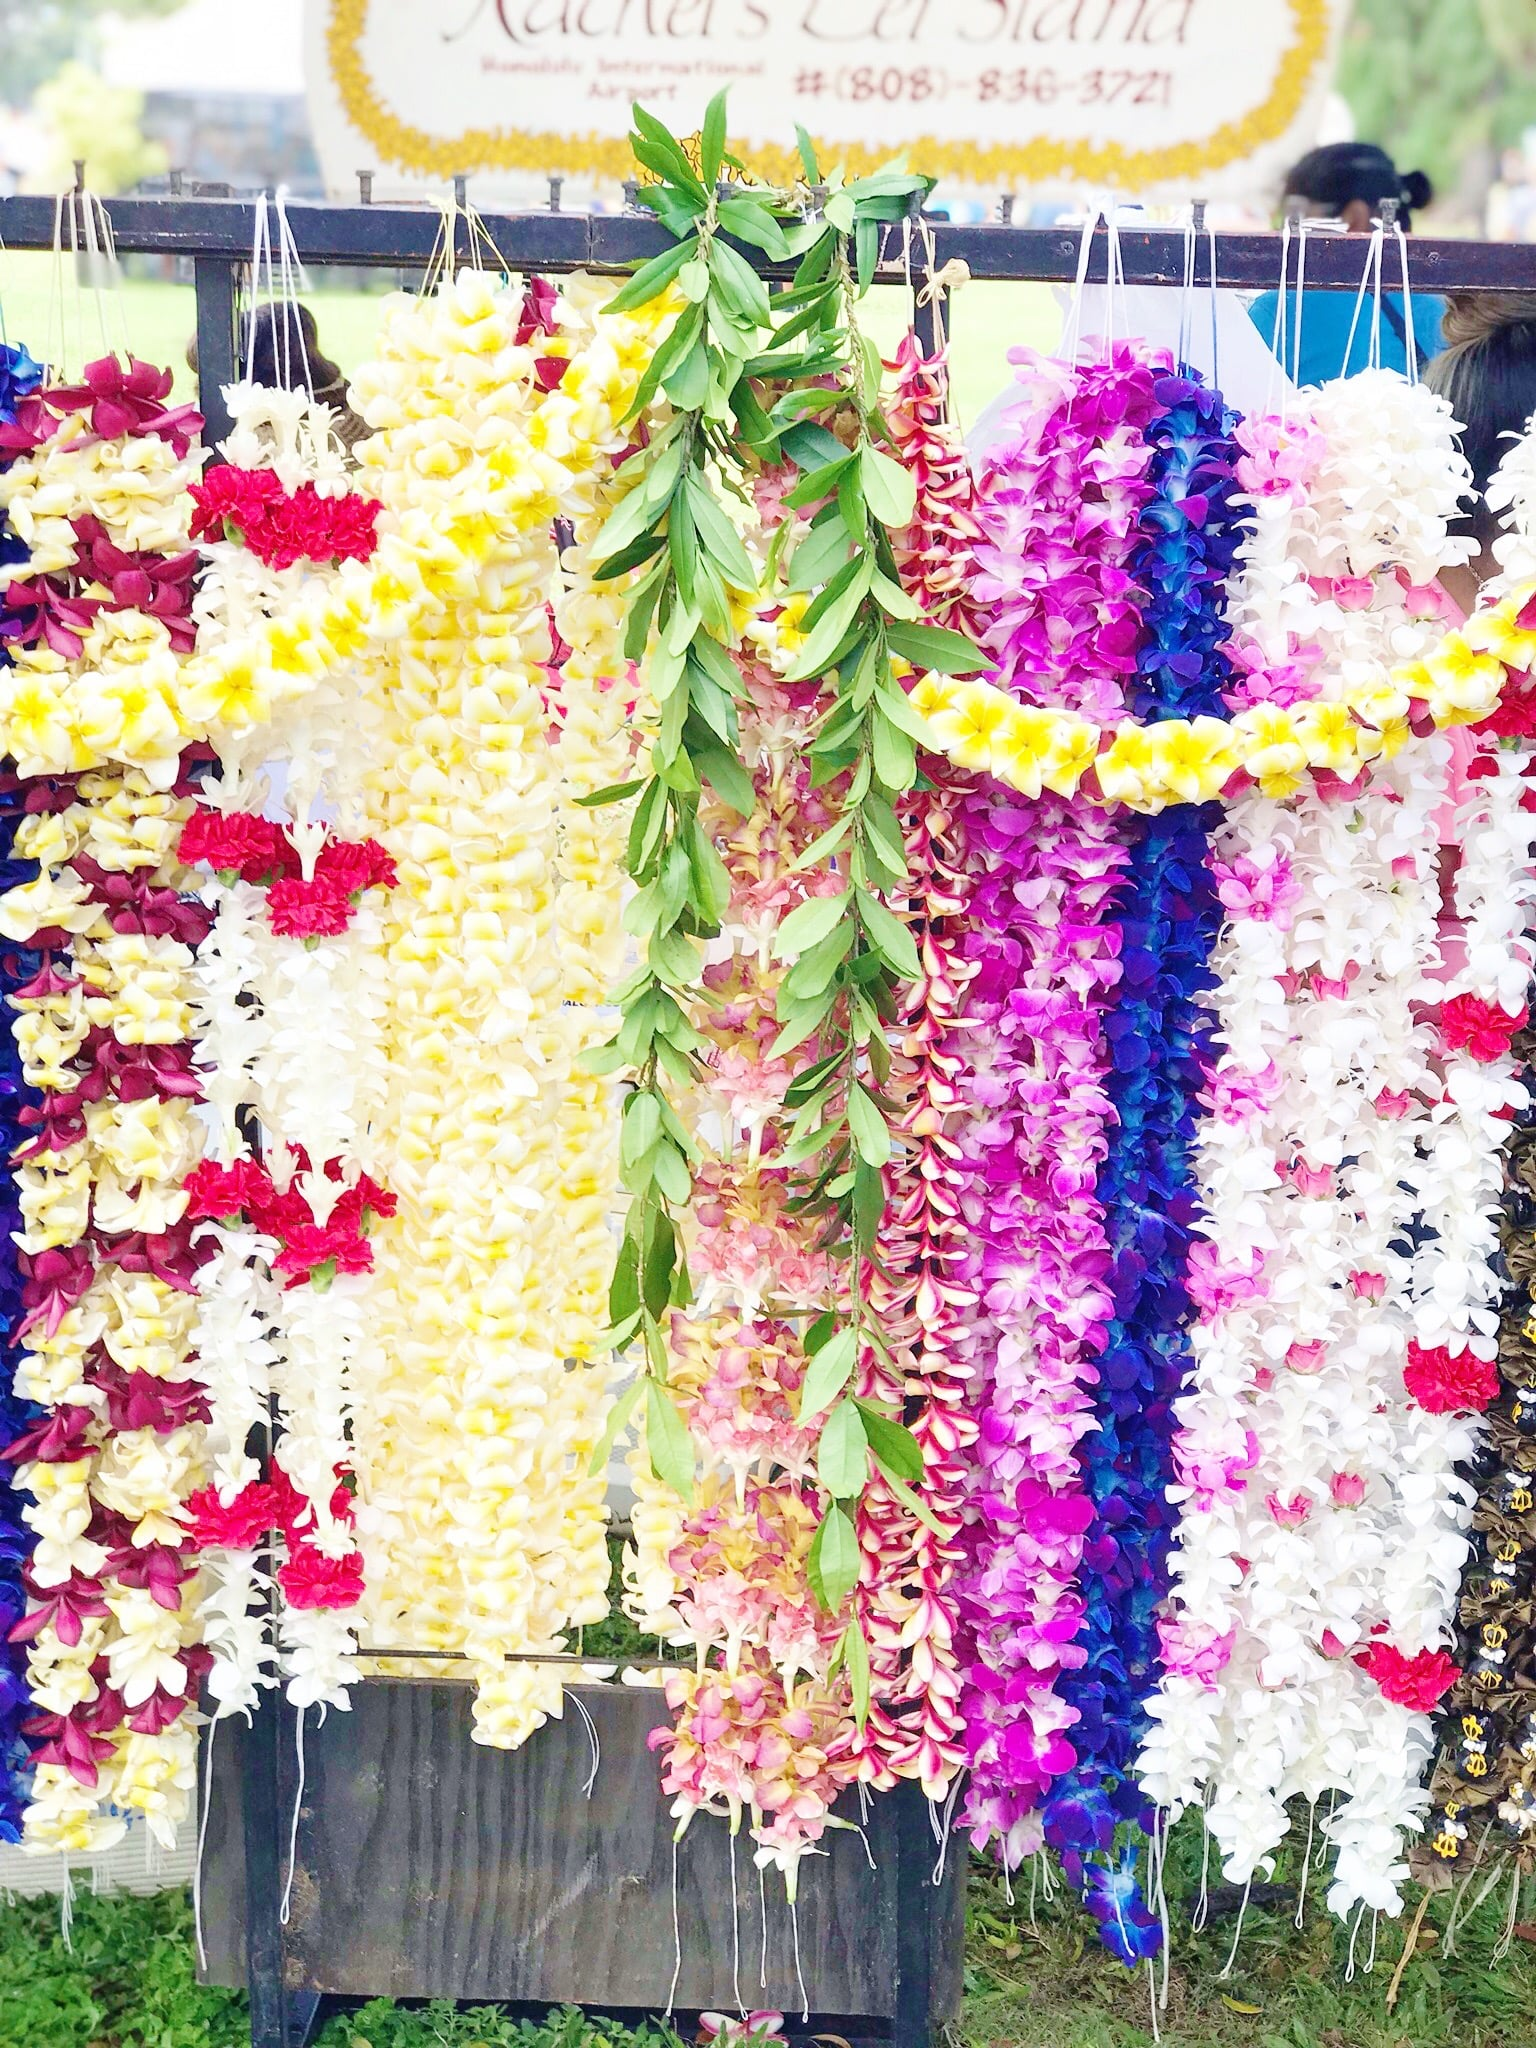 LEI DAY - Hawaii May Day 2019